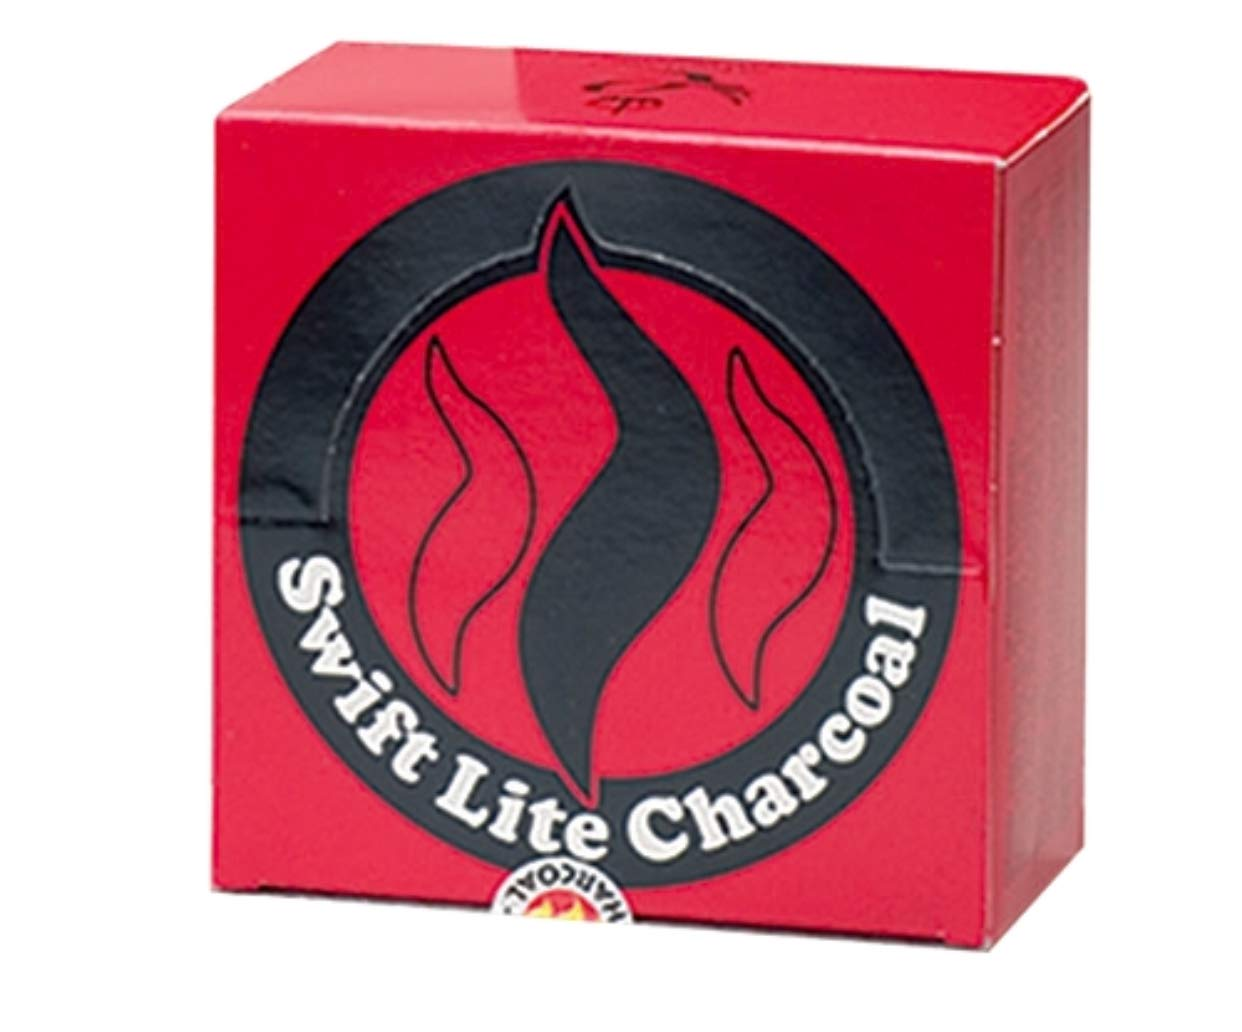 Swift Lite Charcoal Box 10 rolls of 10 x 40mm charcoal tablets Religious Gifts 48